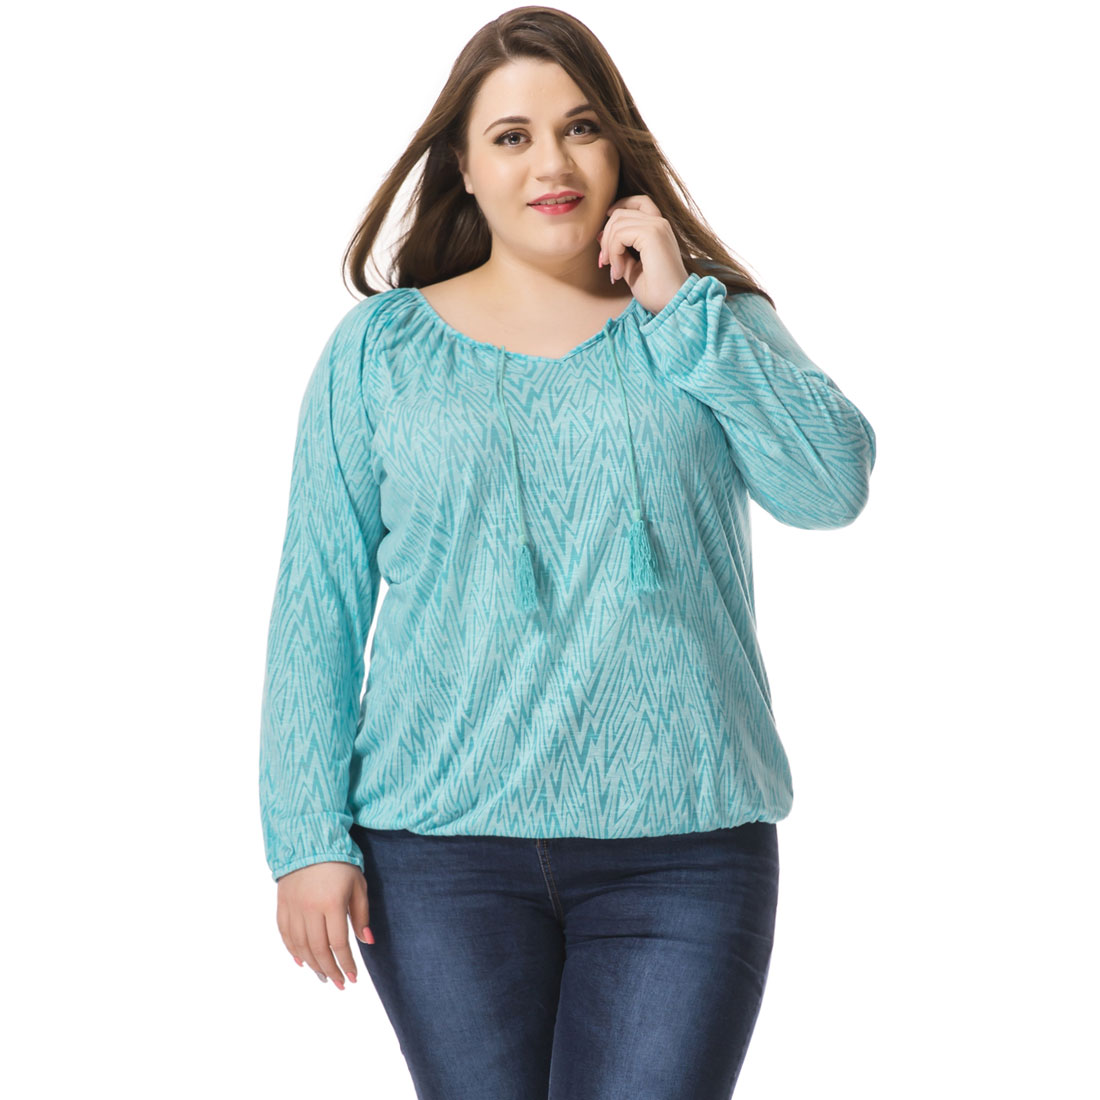 Allegra k women s plus size geometric shape tasseled peasant blouse